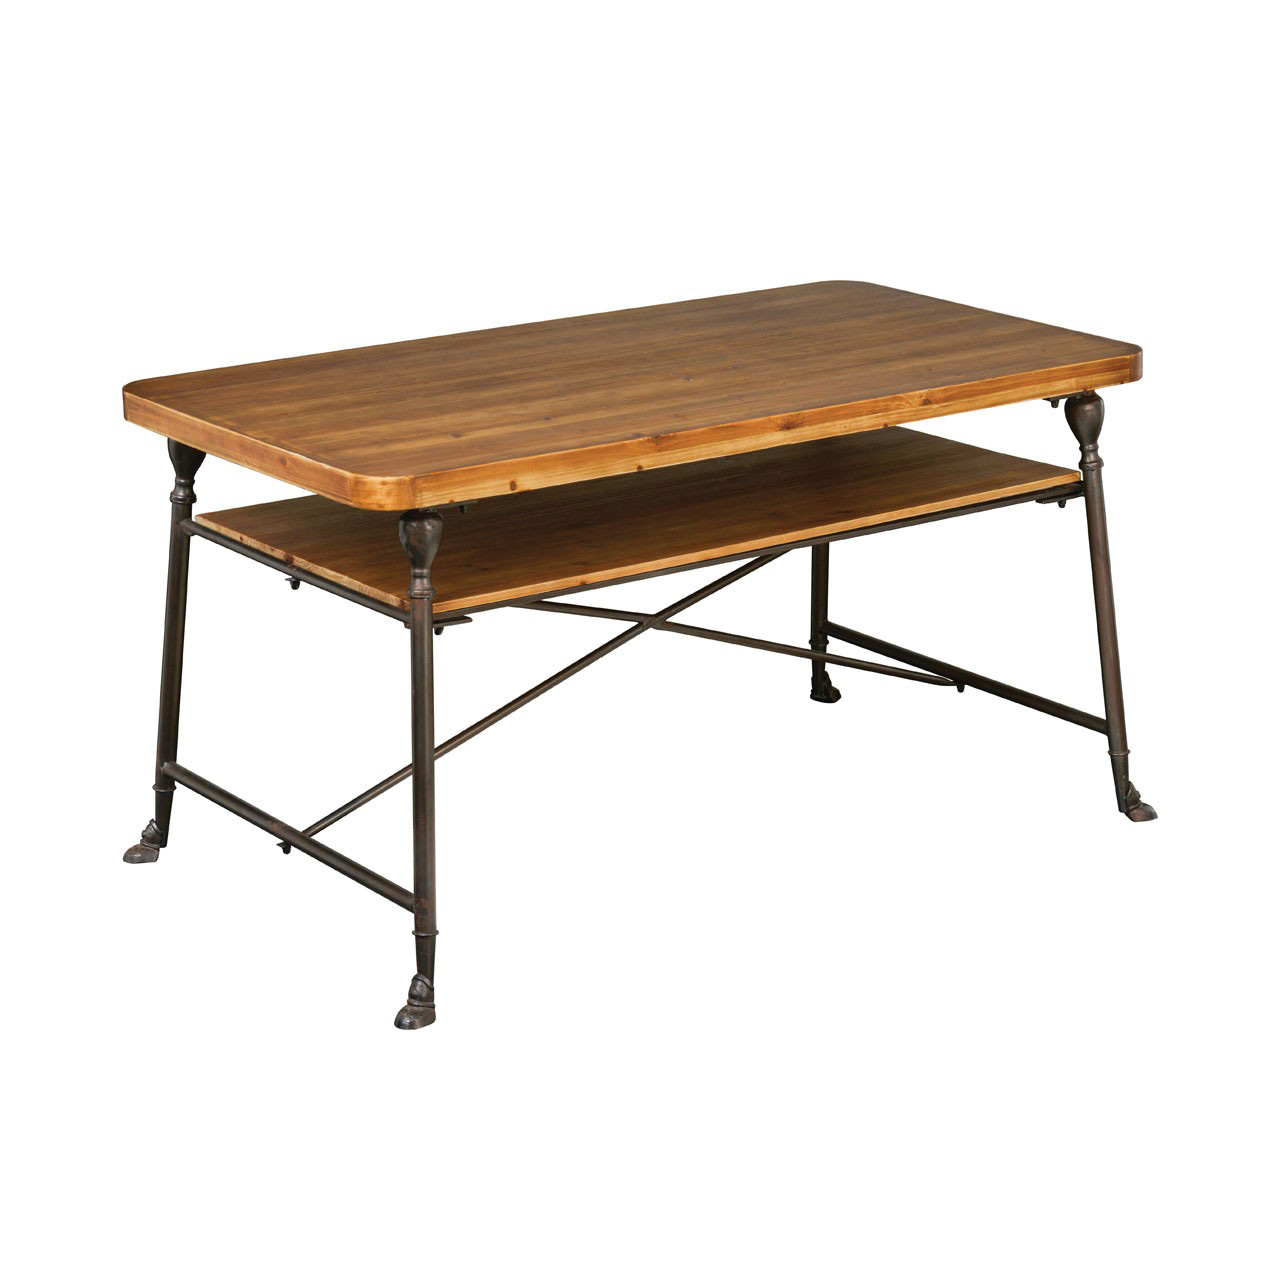 New Foundry Rectangular Dining Table 4 Seater